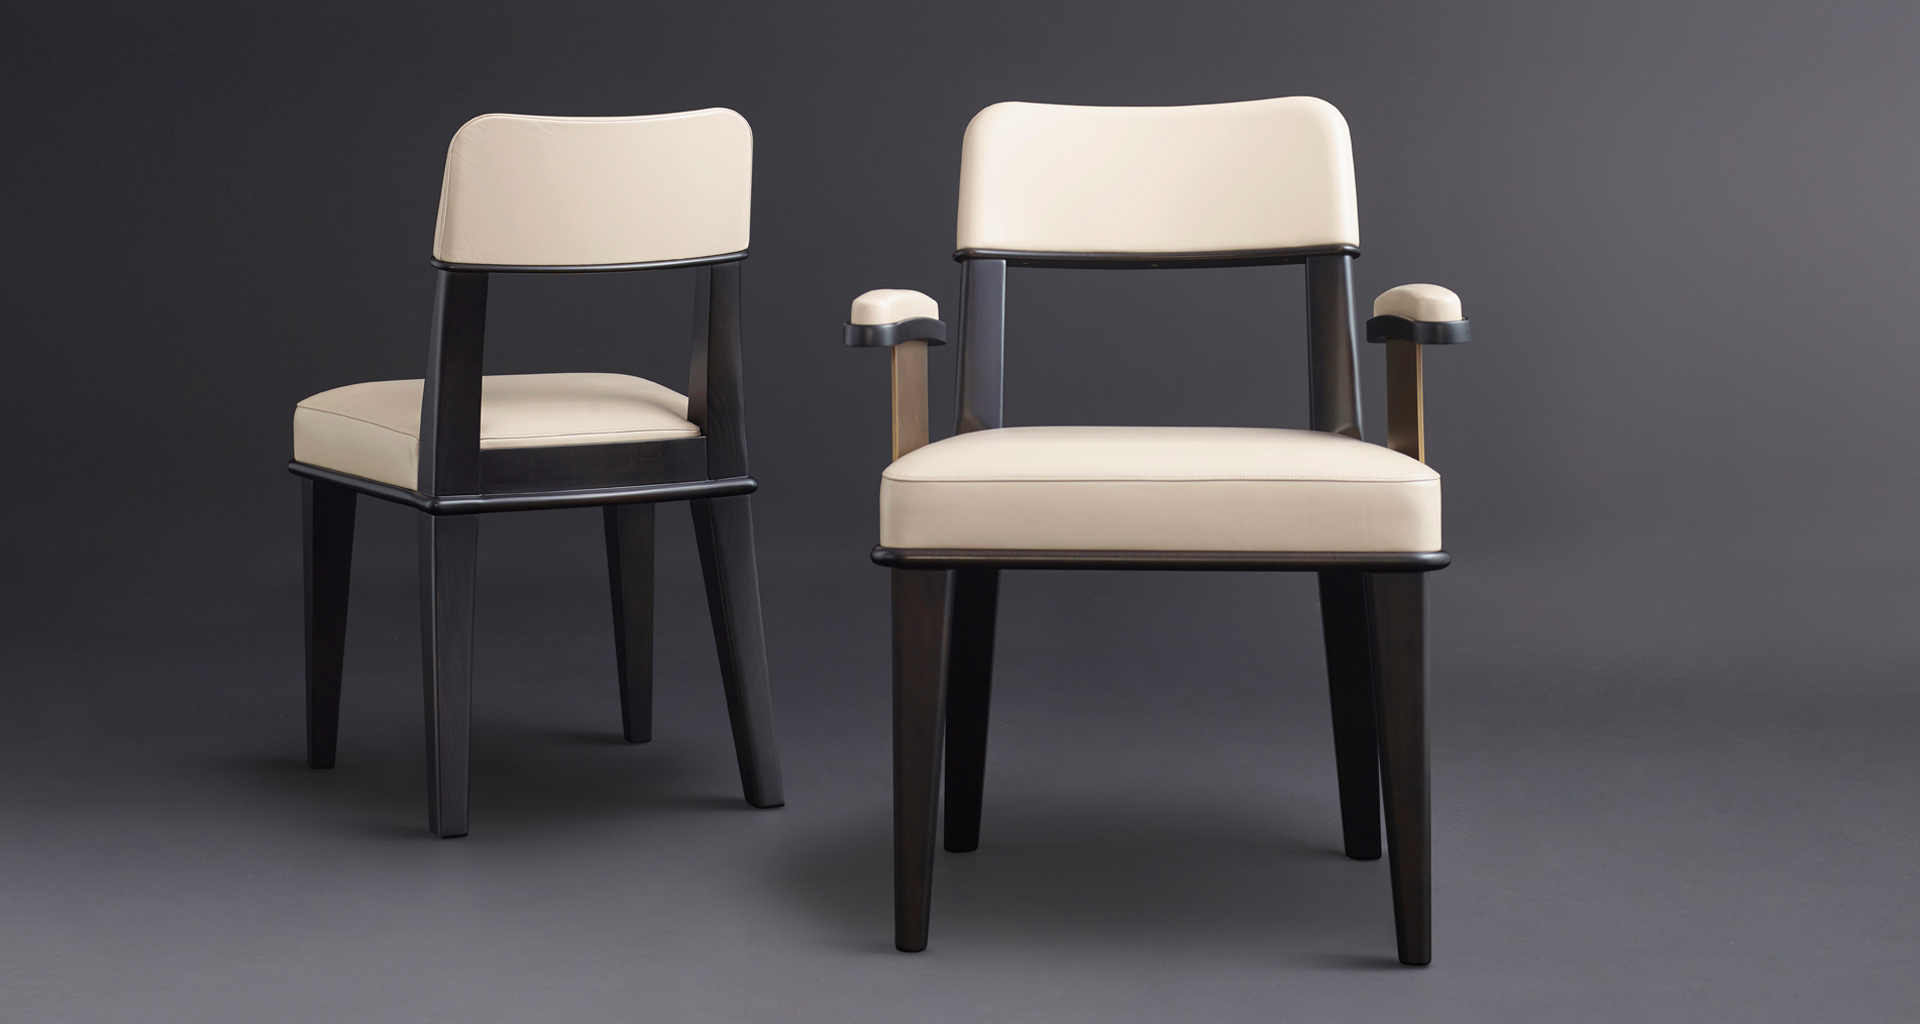 Vespertine is a wooden dining chair with leather seat and back and with or without armrests with bronze details, from Promemoria's Night Tales collection | Promemoria